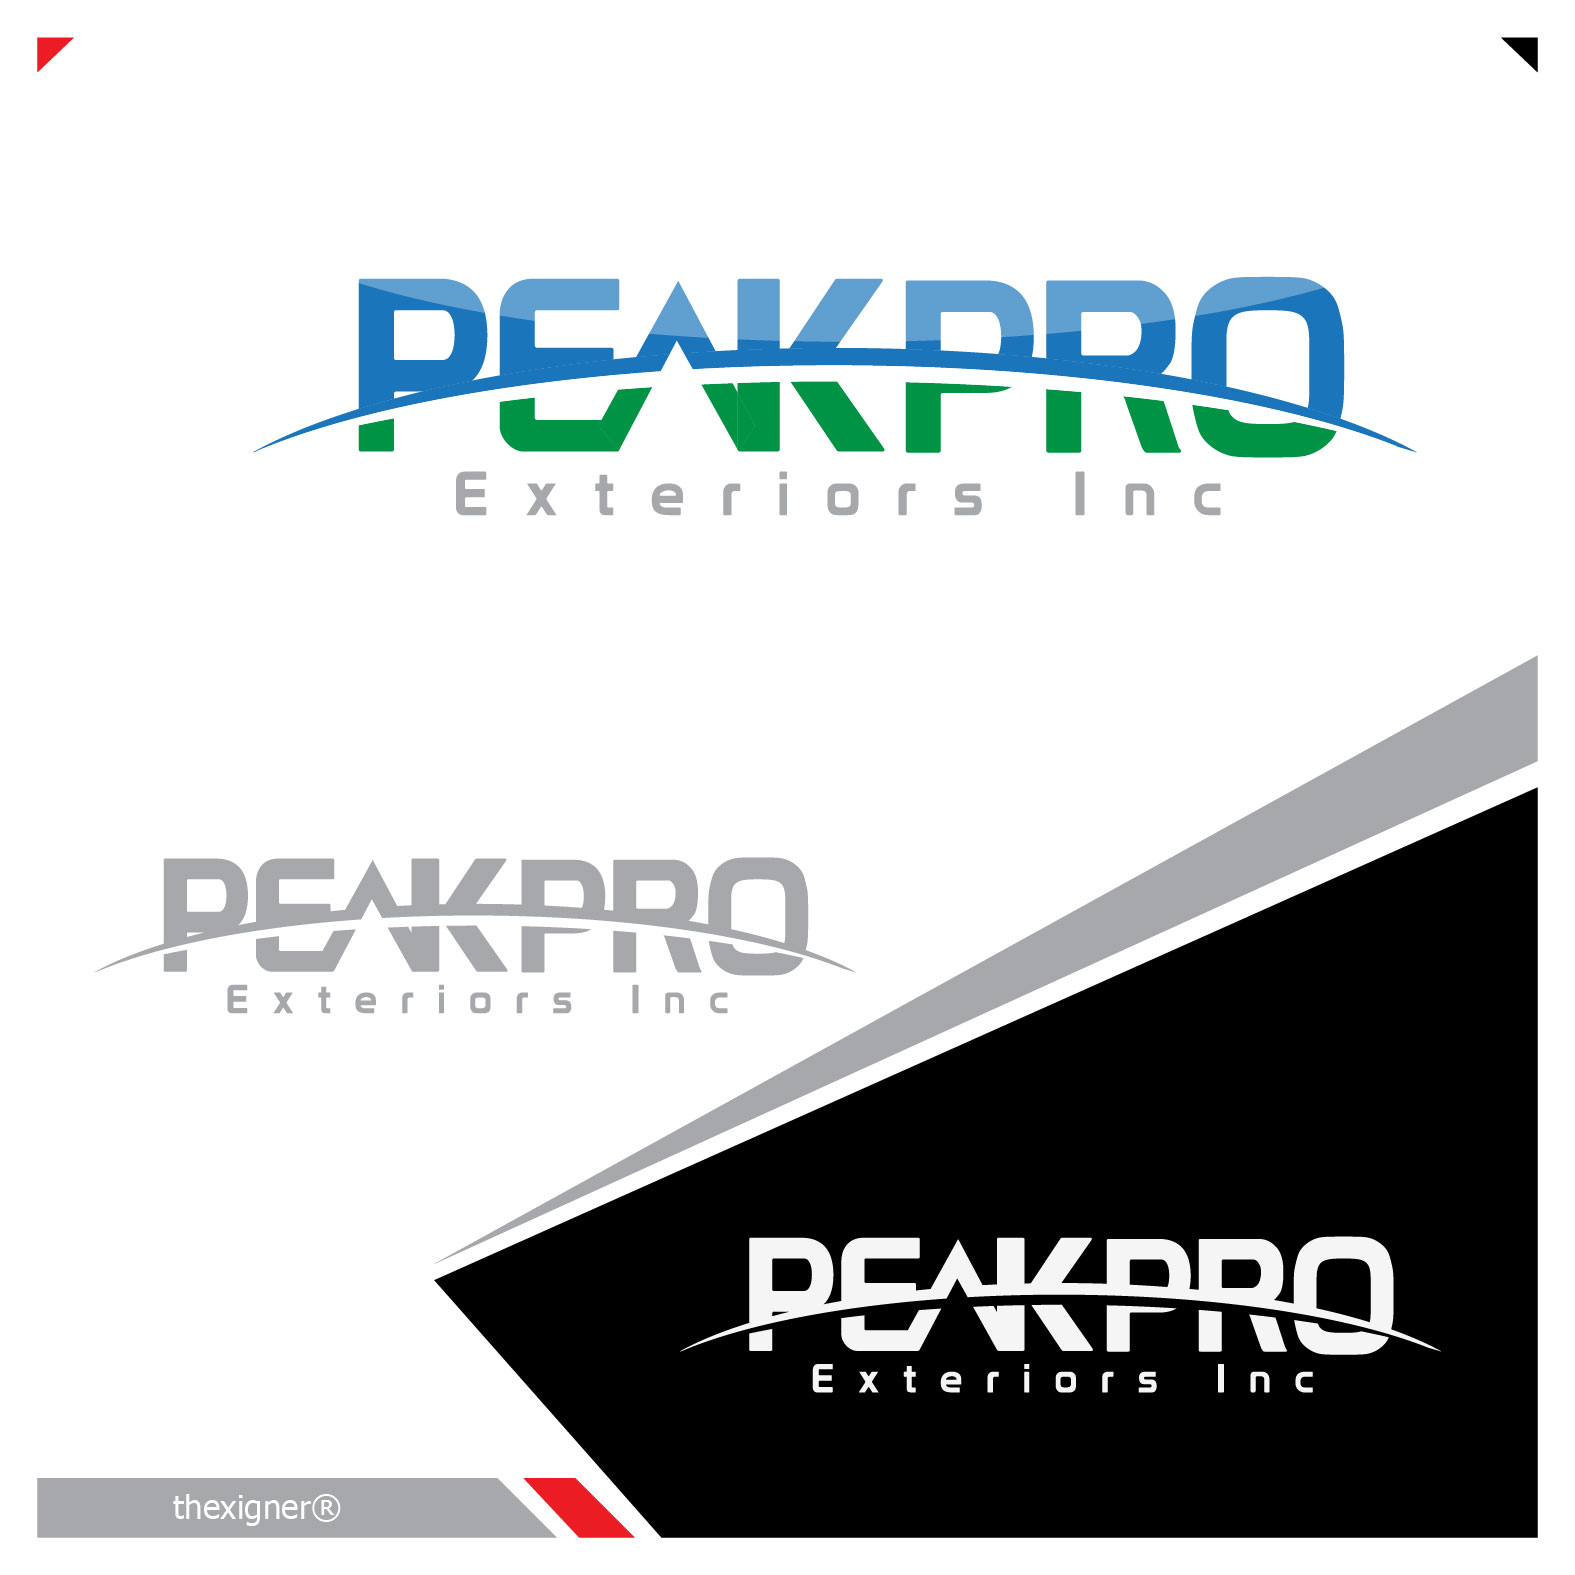 Logo Design by lagalag - Entry No. 11 in the Logo Design Contest Captivating Logo Design for Peakpro Exteriors Inc..